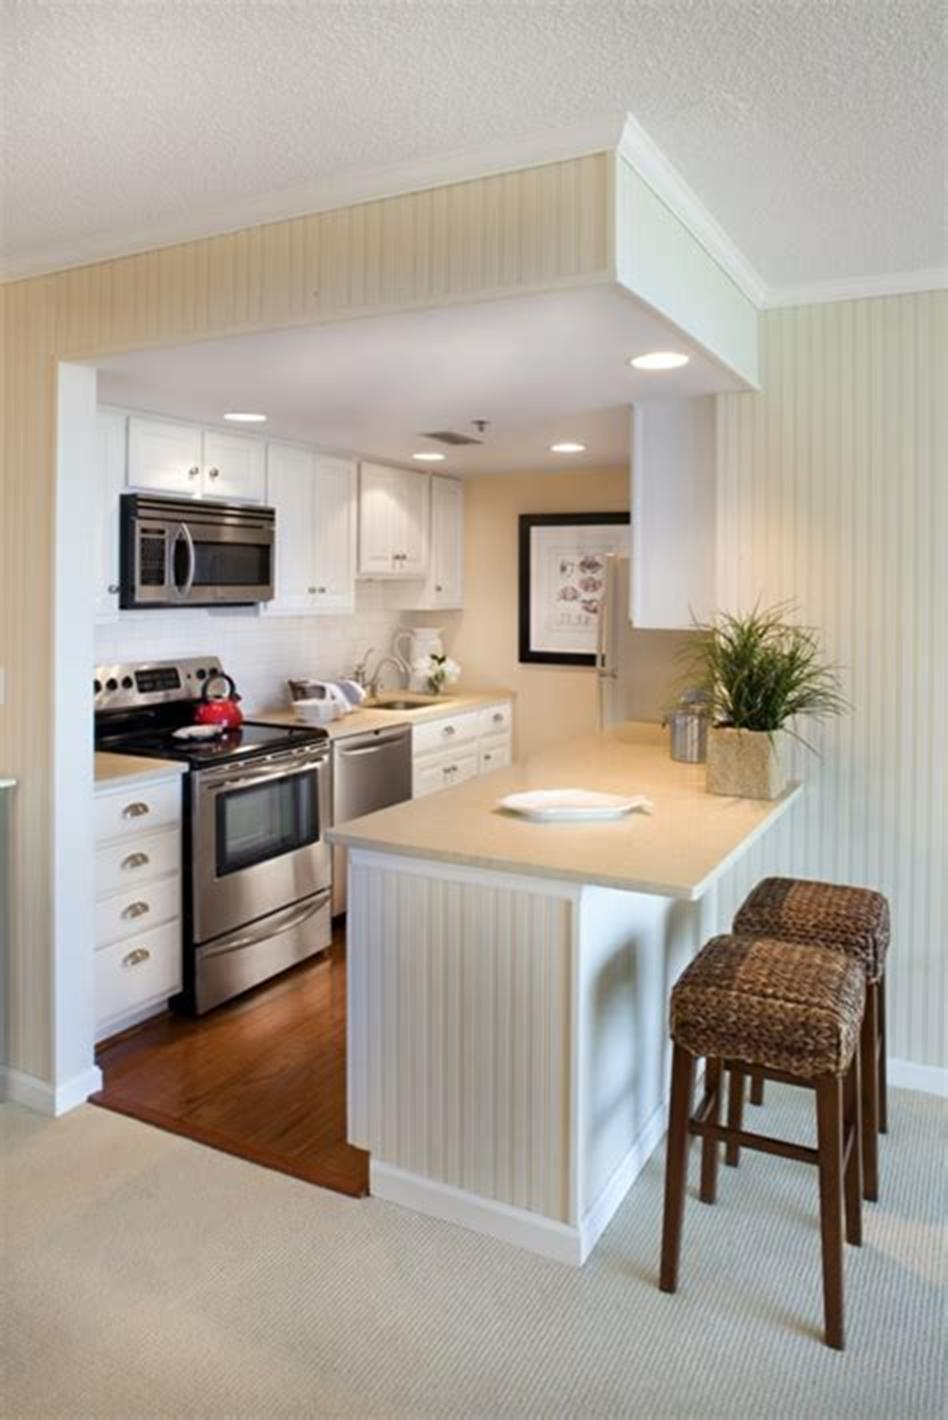 43 Amazing Kitchen Remodeling Ideas for Small Kitchens ...